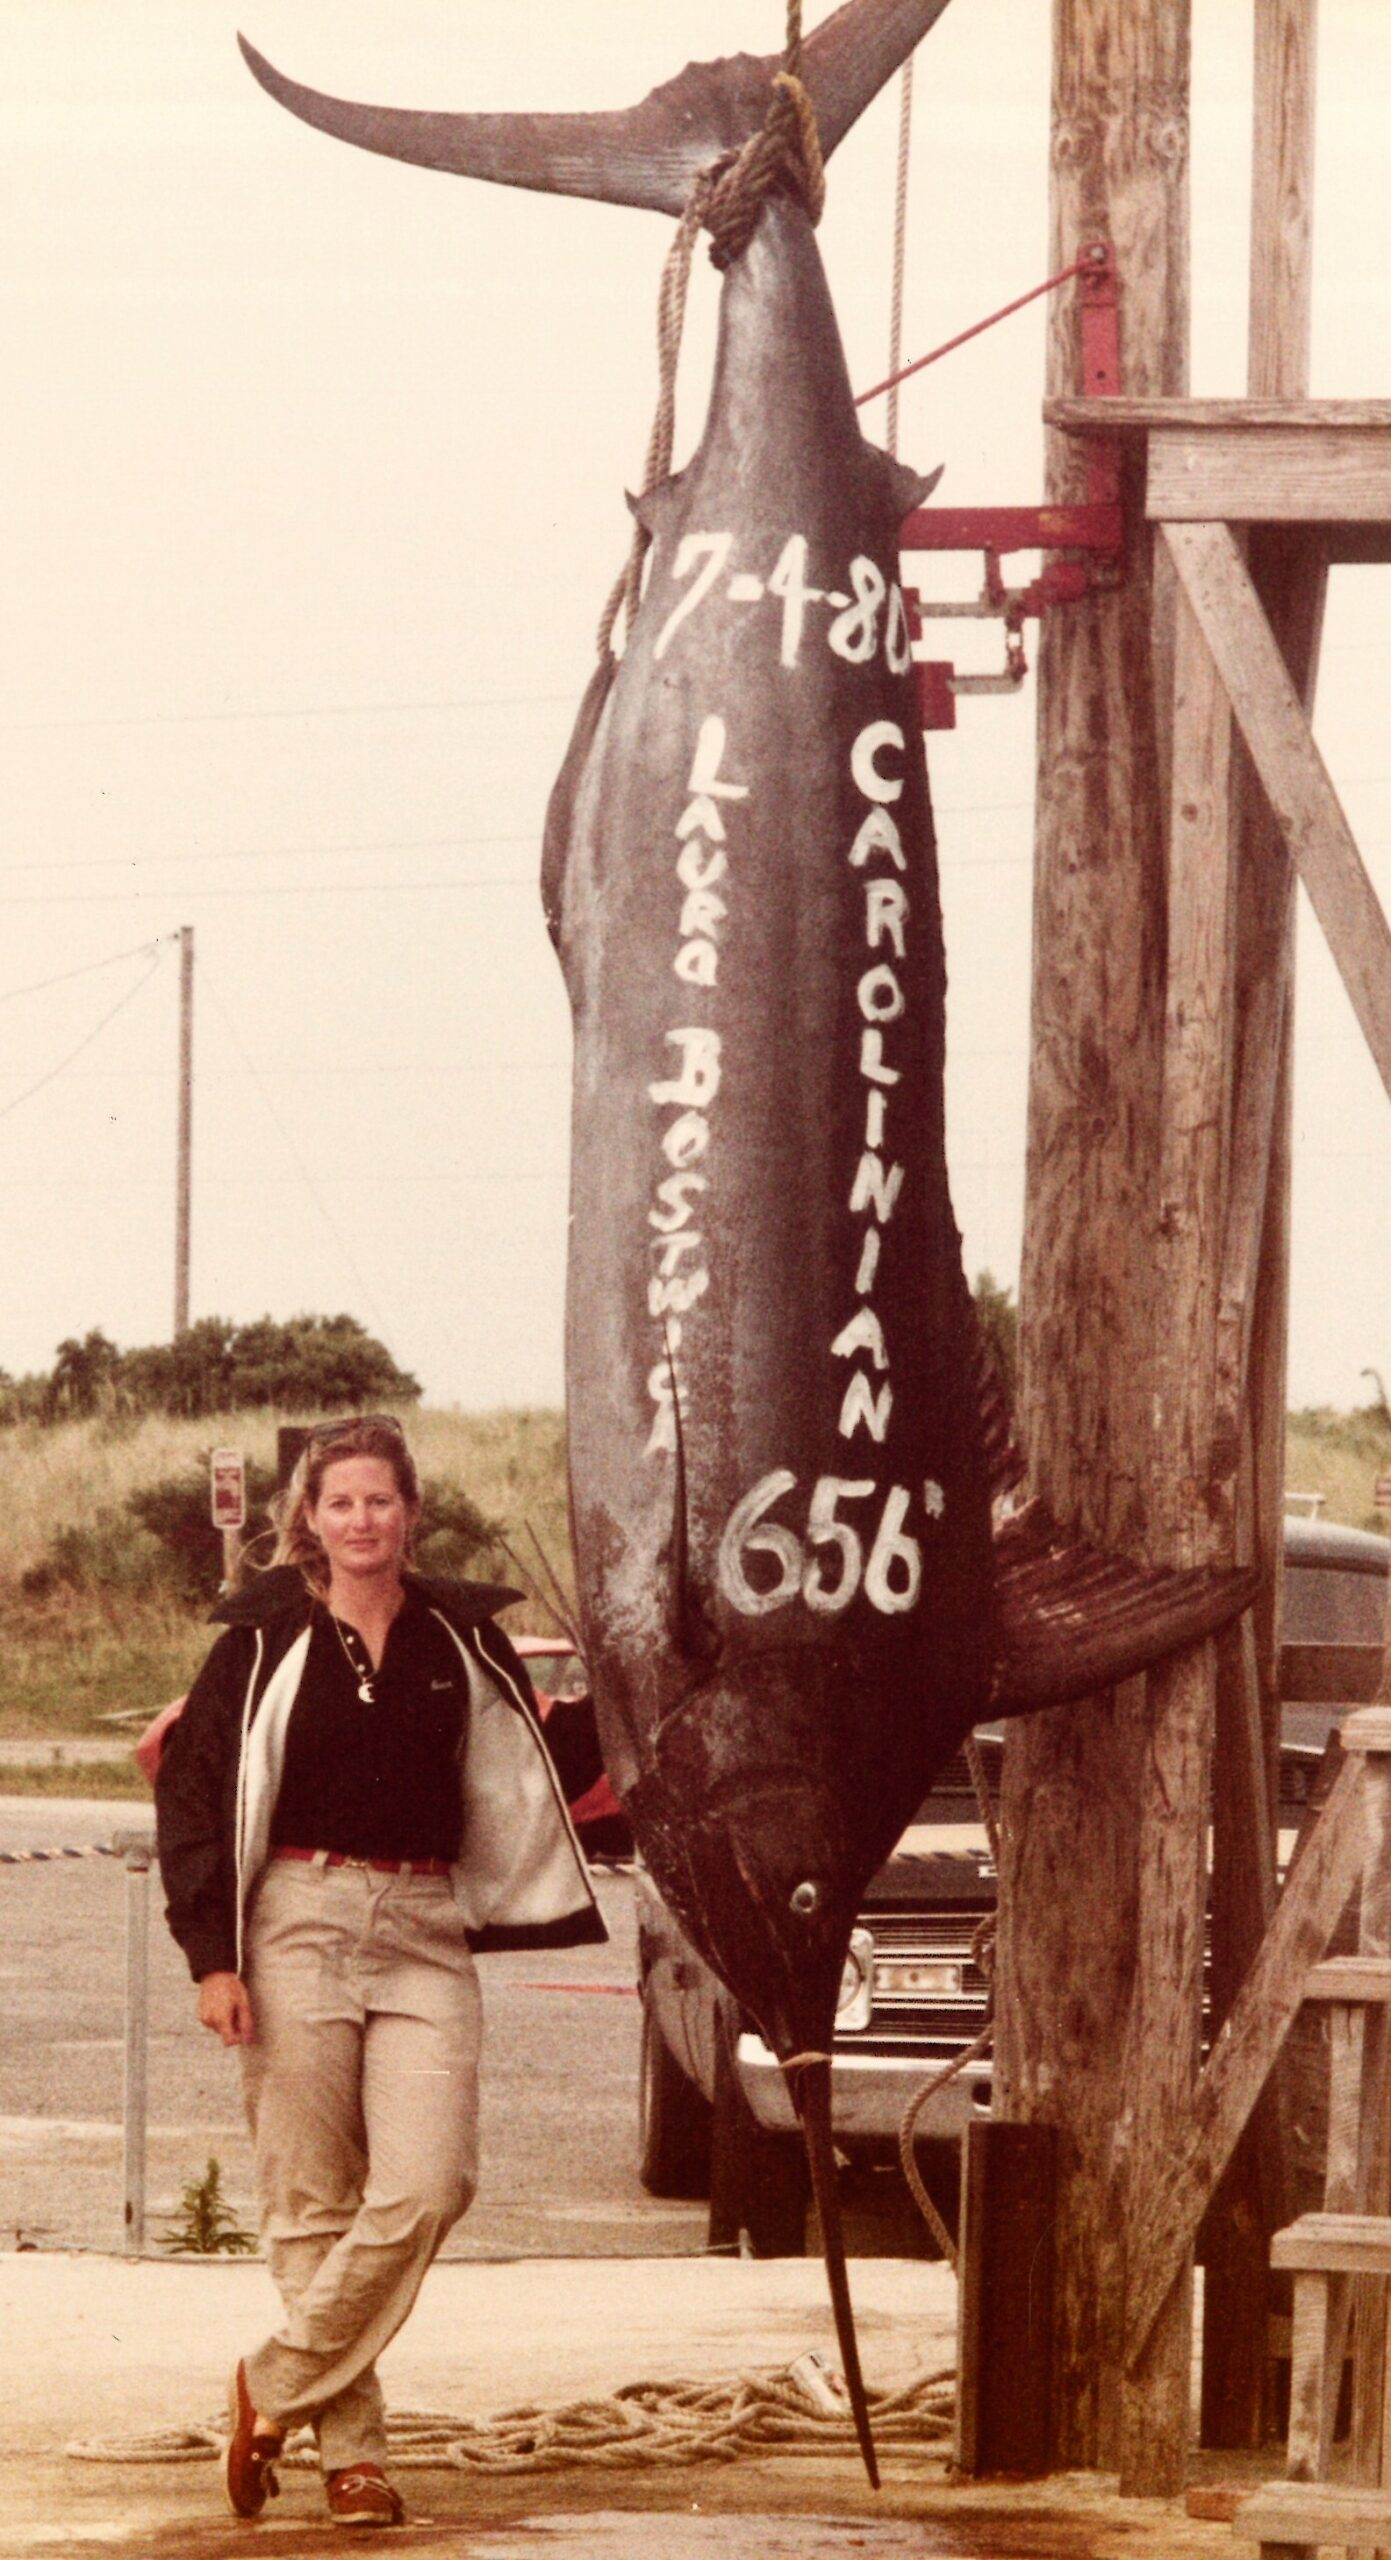 Laura Bostwick, former blue marlin state record holder, dies at 76 - OBXToday.com